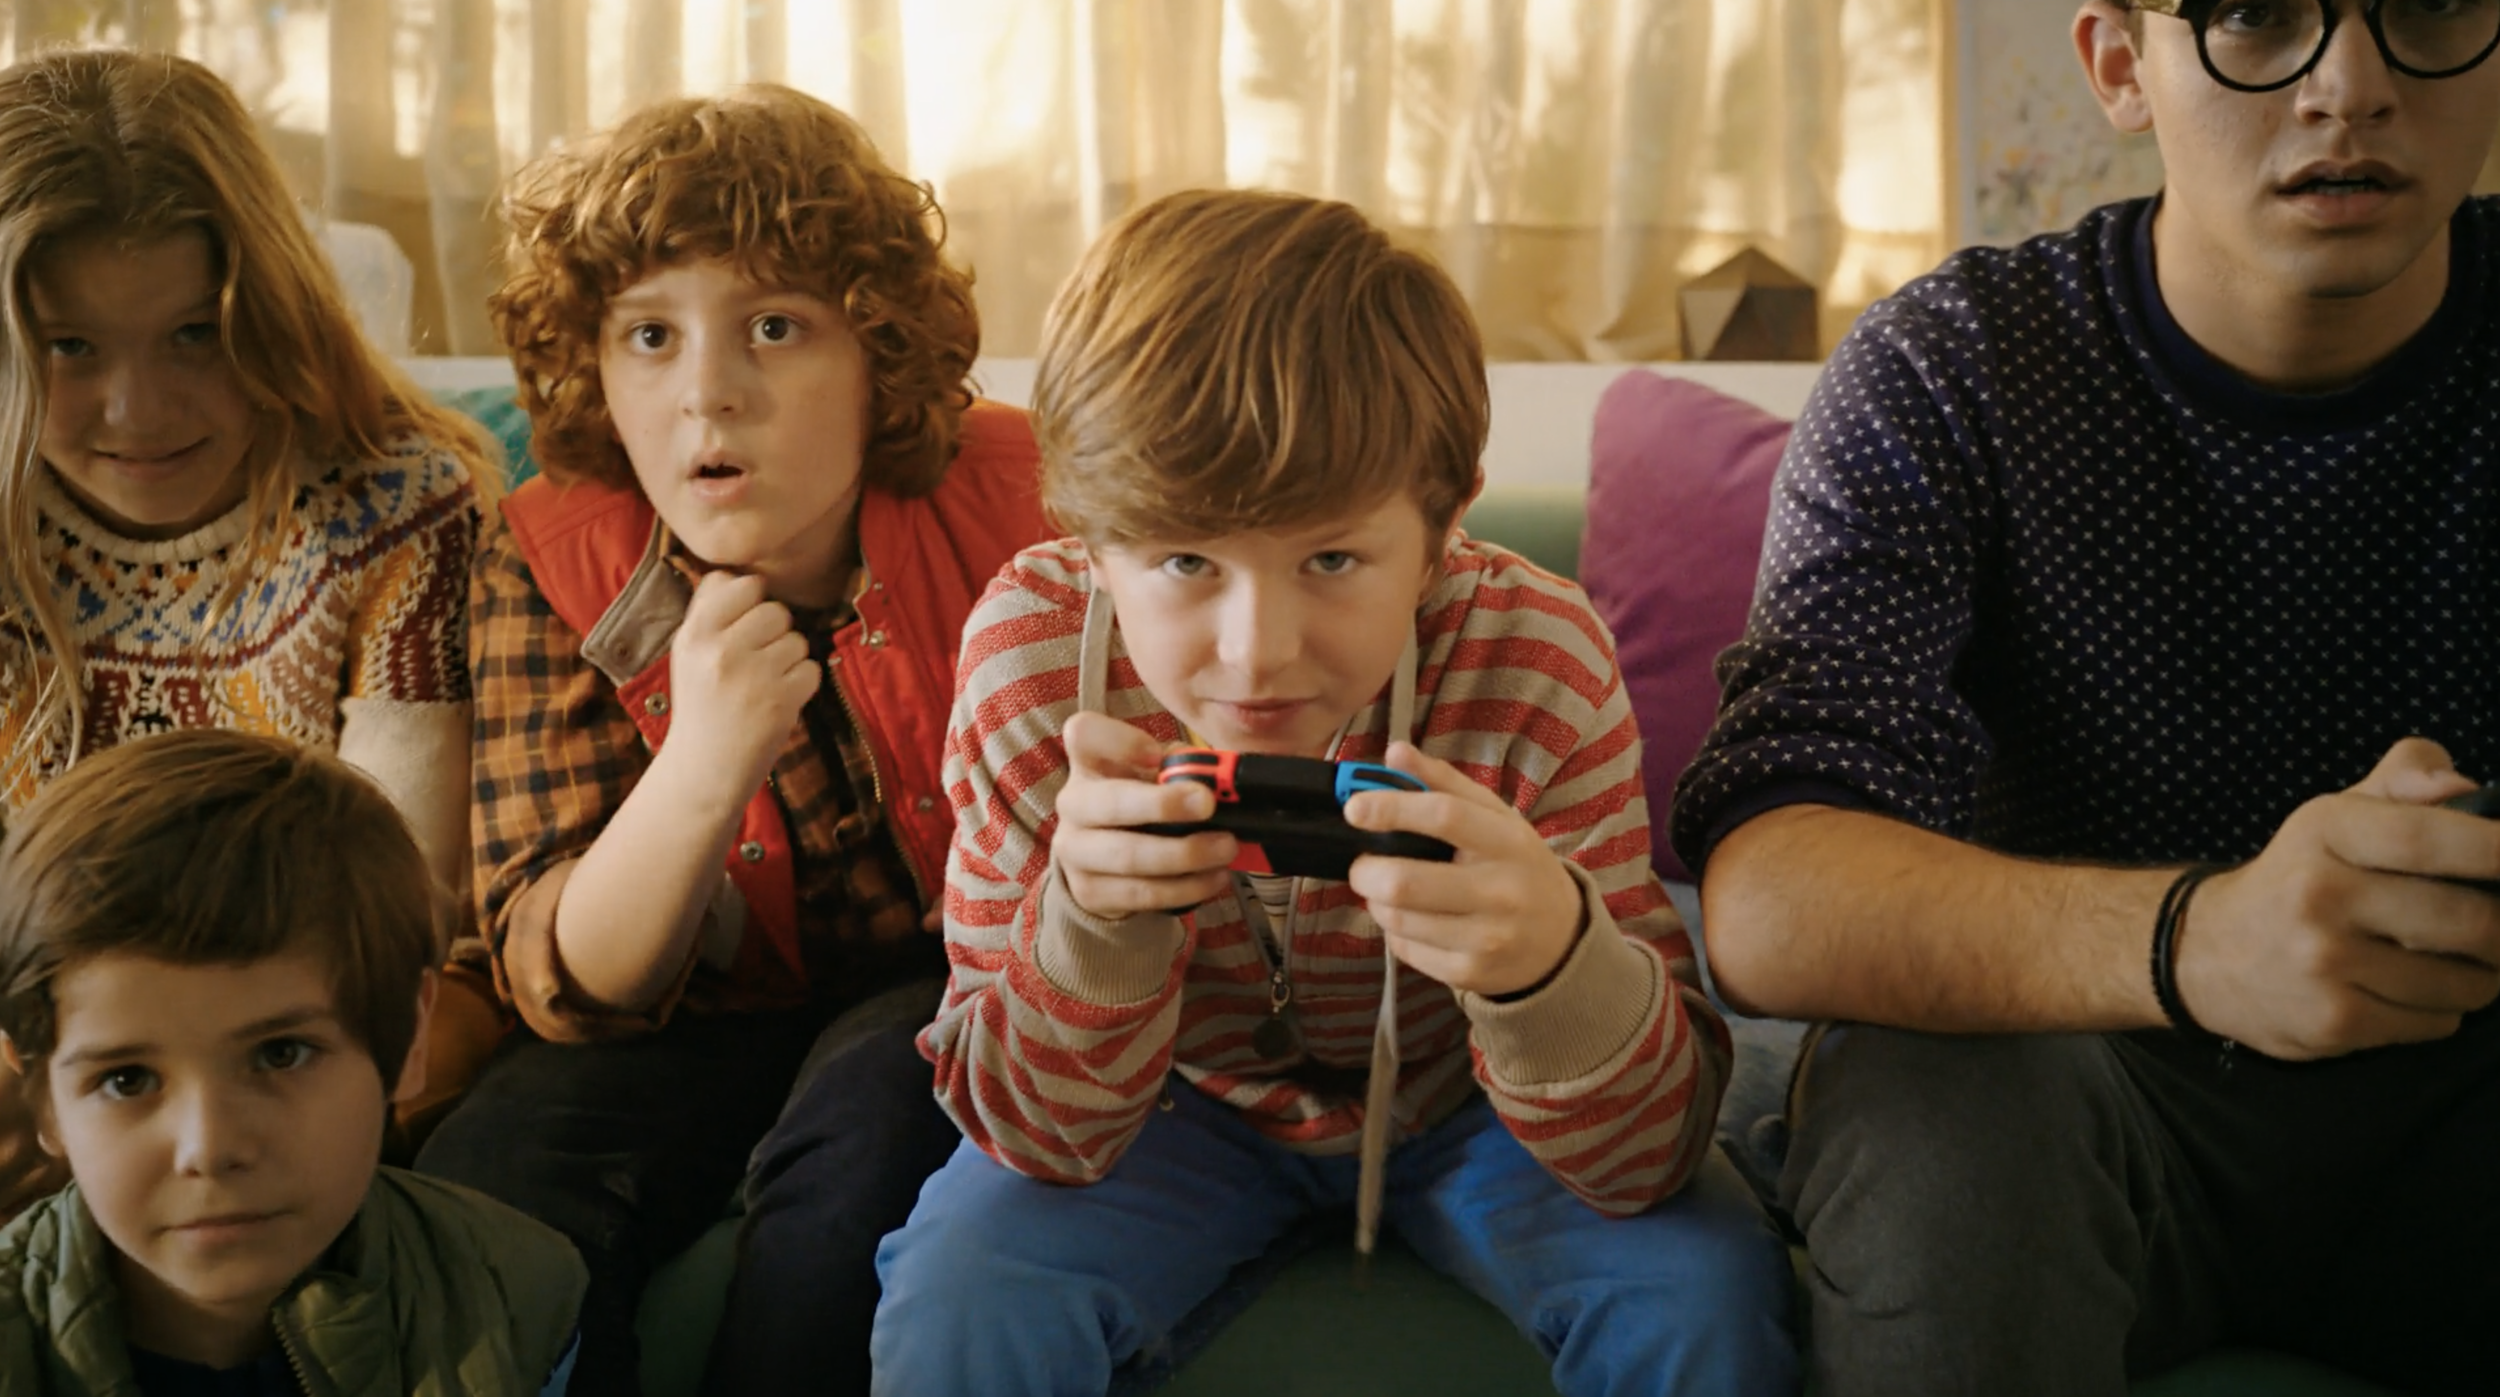 Nintendo Switch Global Campaign